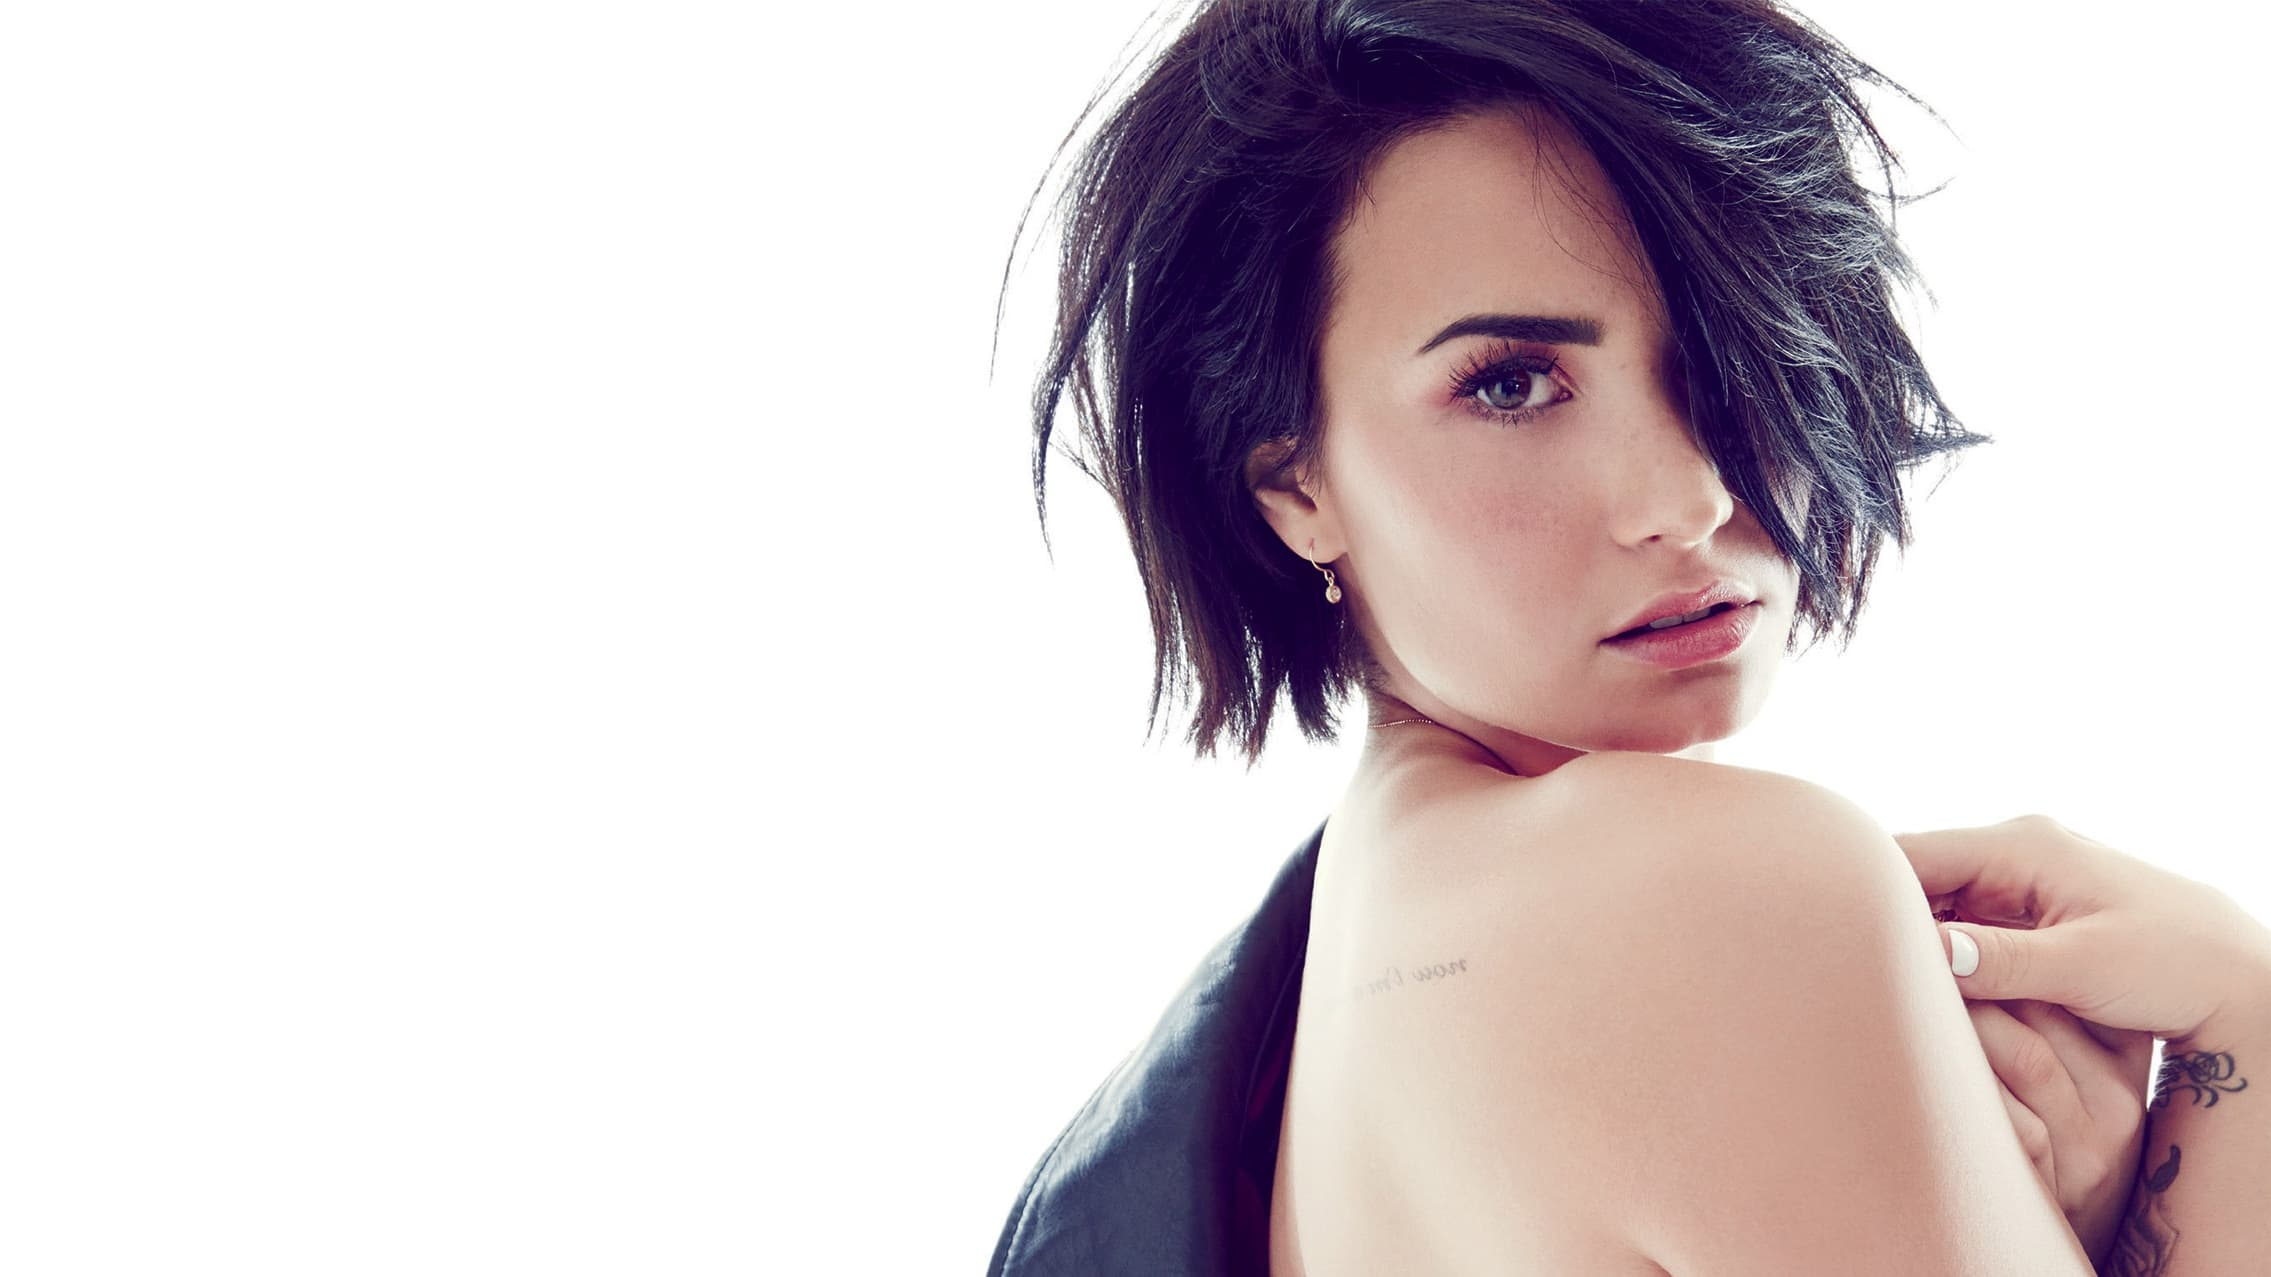 Demi Lovato 20 Wallpapers HD Desktop High Resolution 2271x1277